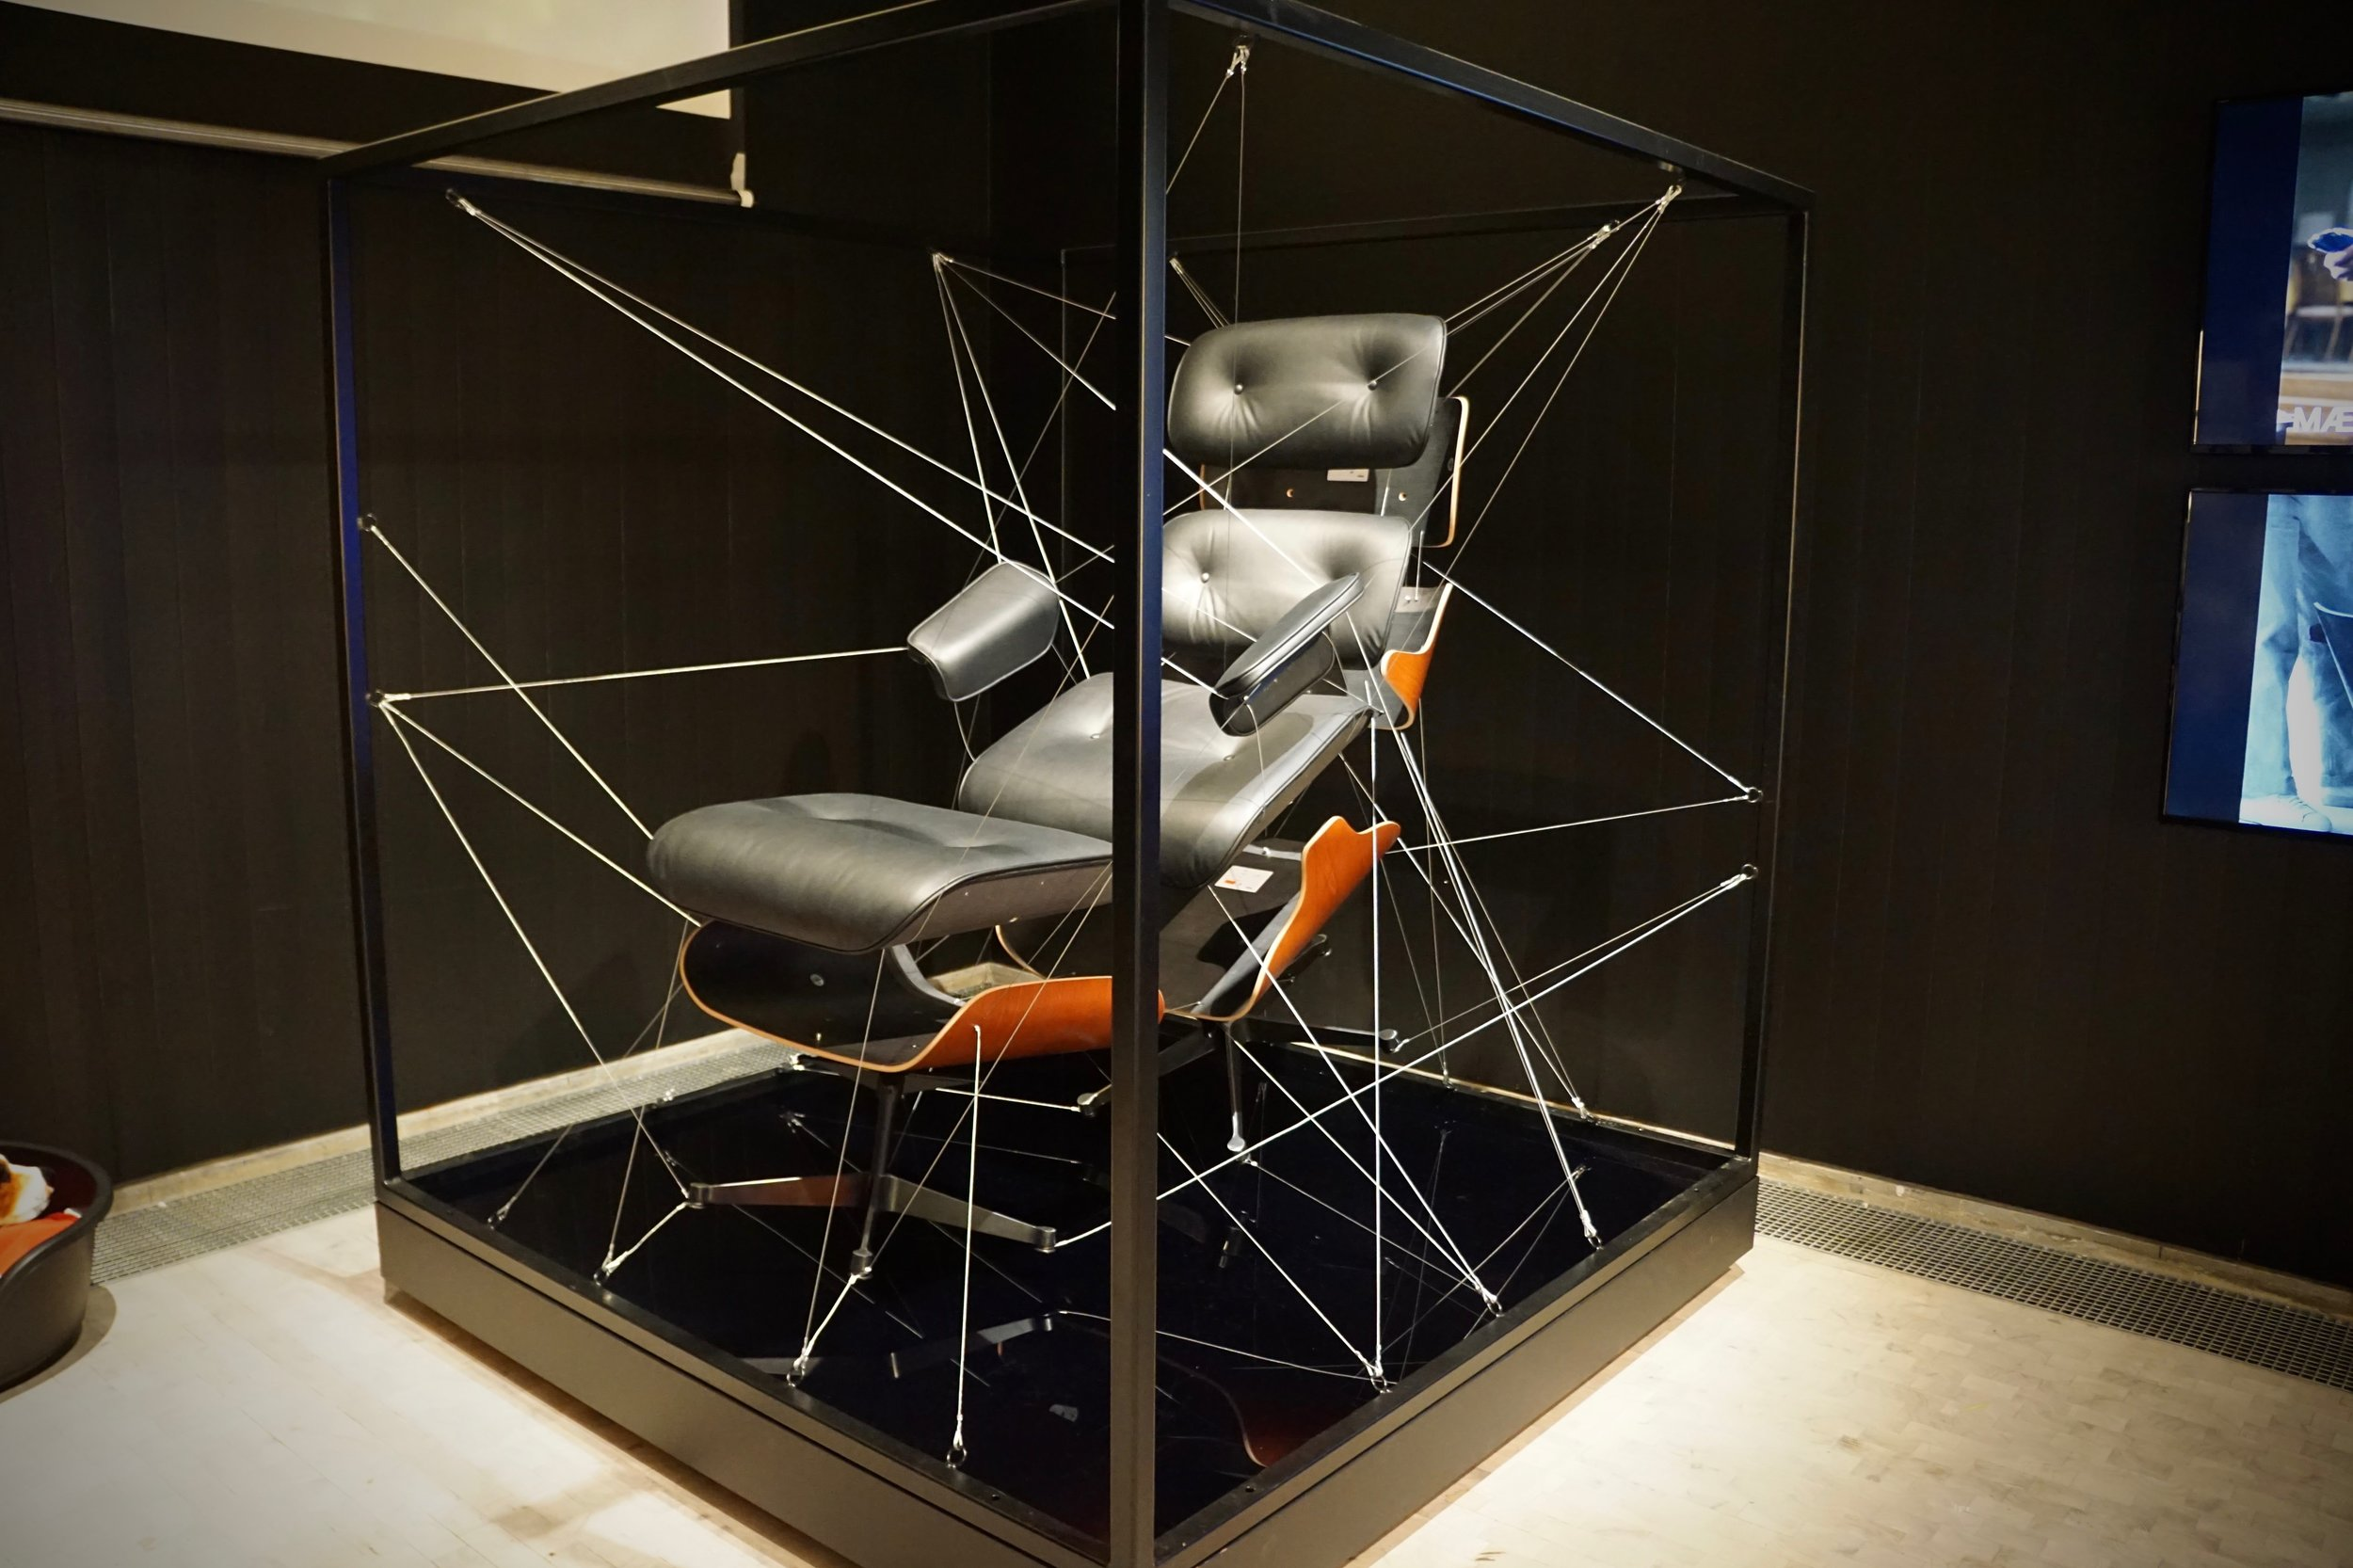 Exploded Eames Lounge Chair - created by Vincent Faust (USA), 2006